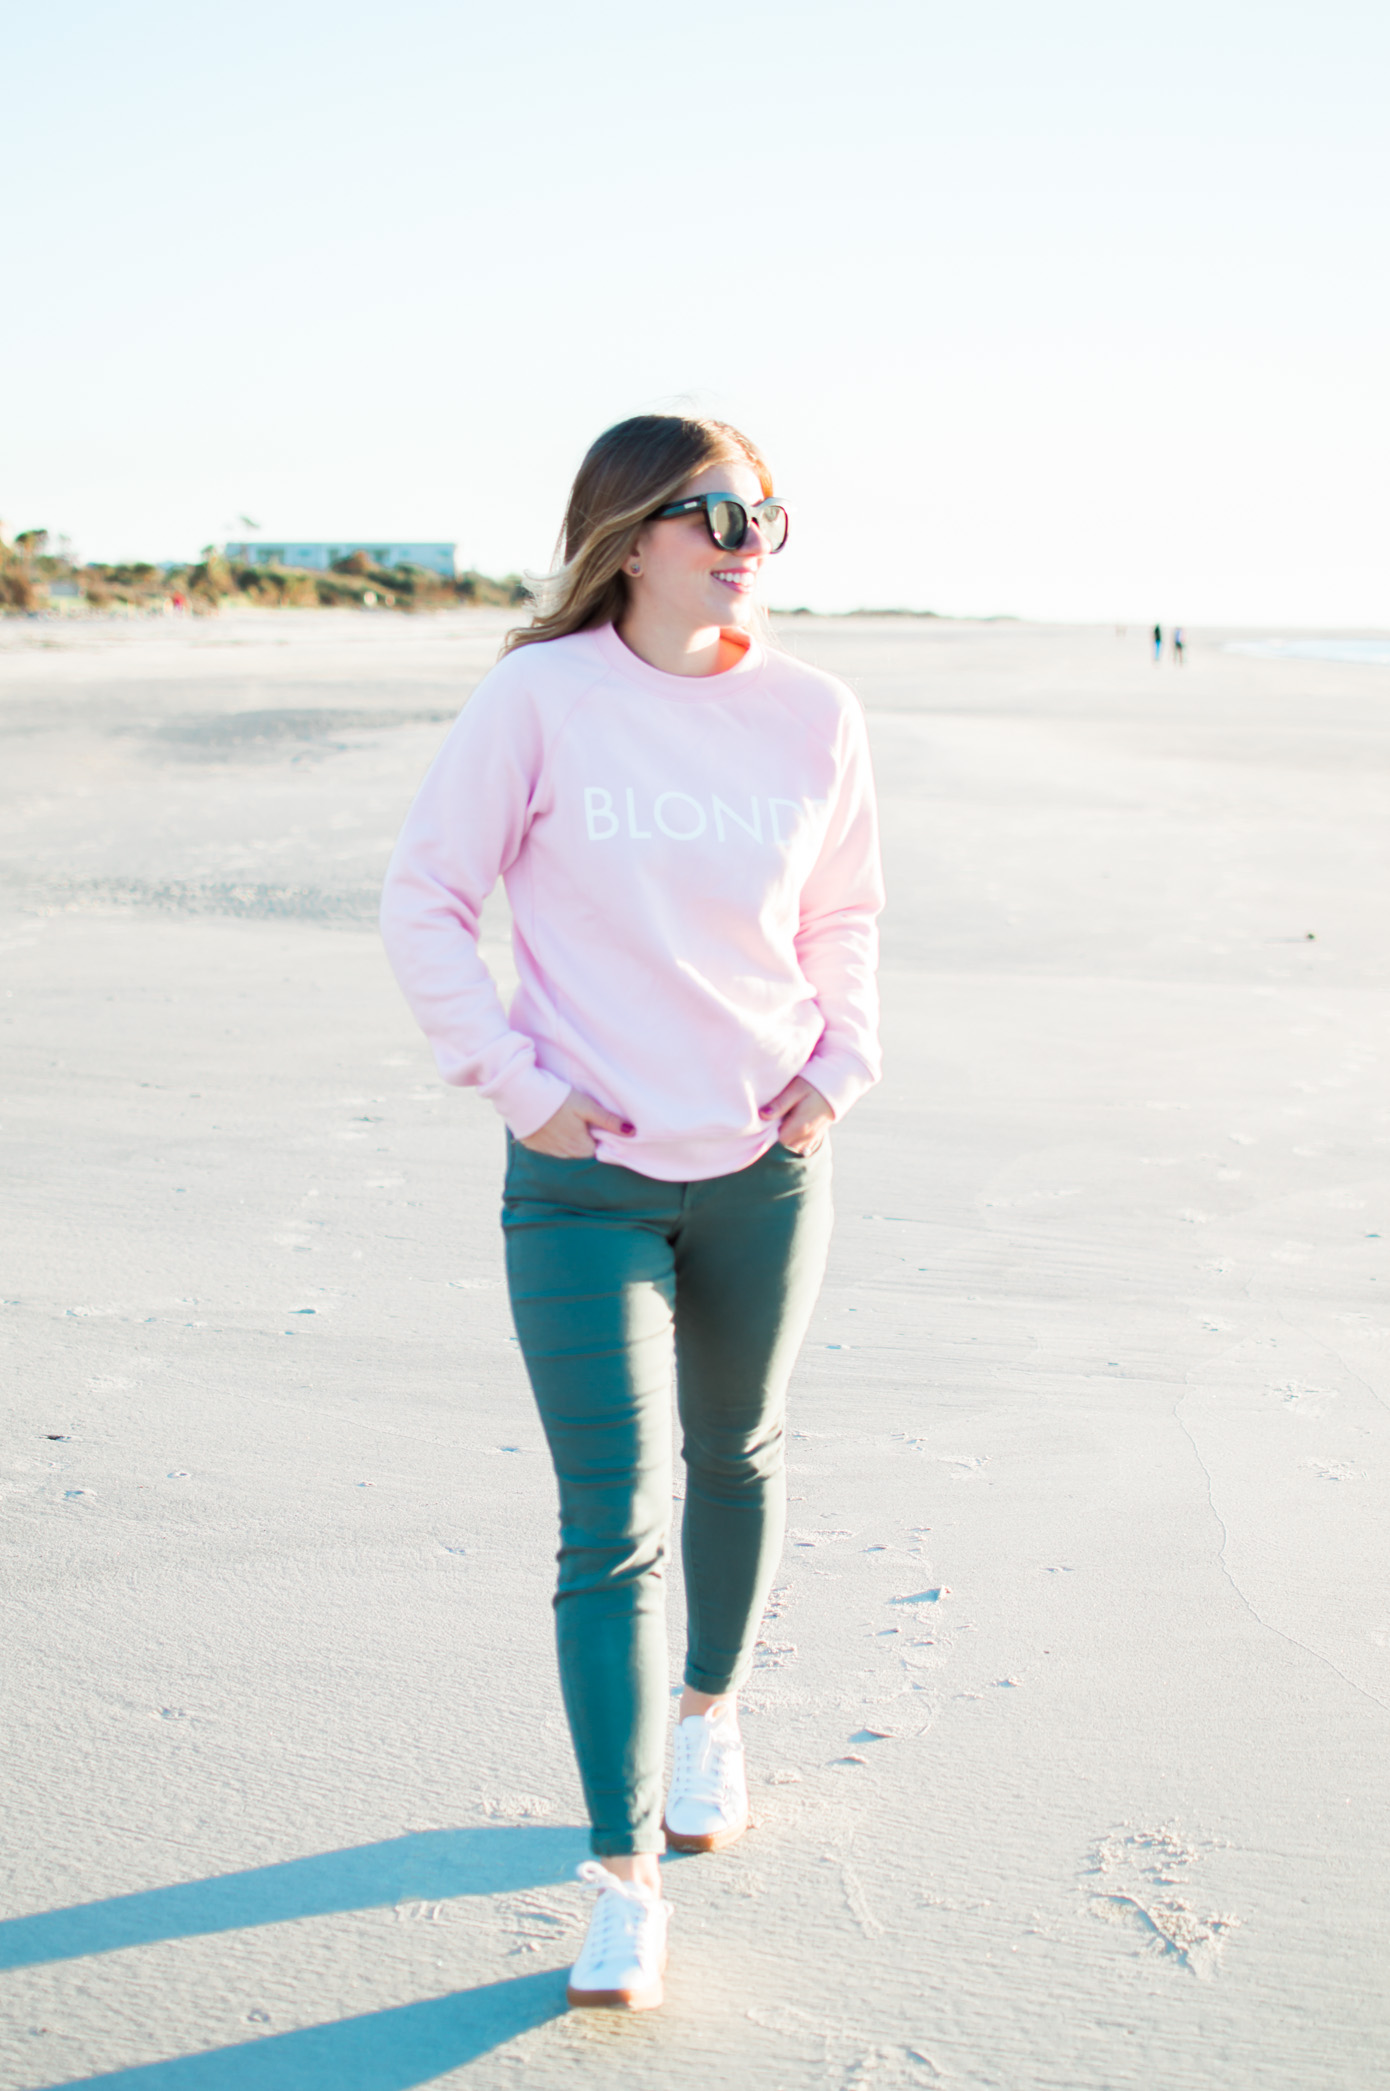 Blonde Sweatshirt | Graphic Sweatshirt | Gift for Your Bestie | Louella Reese Life & Style Blog